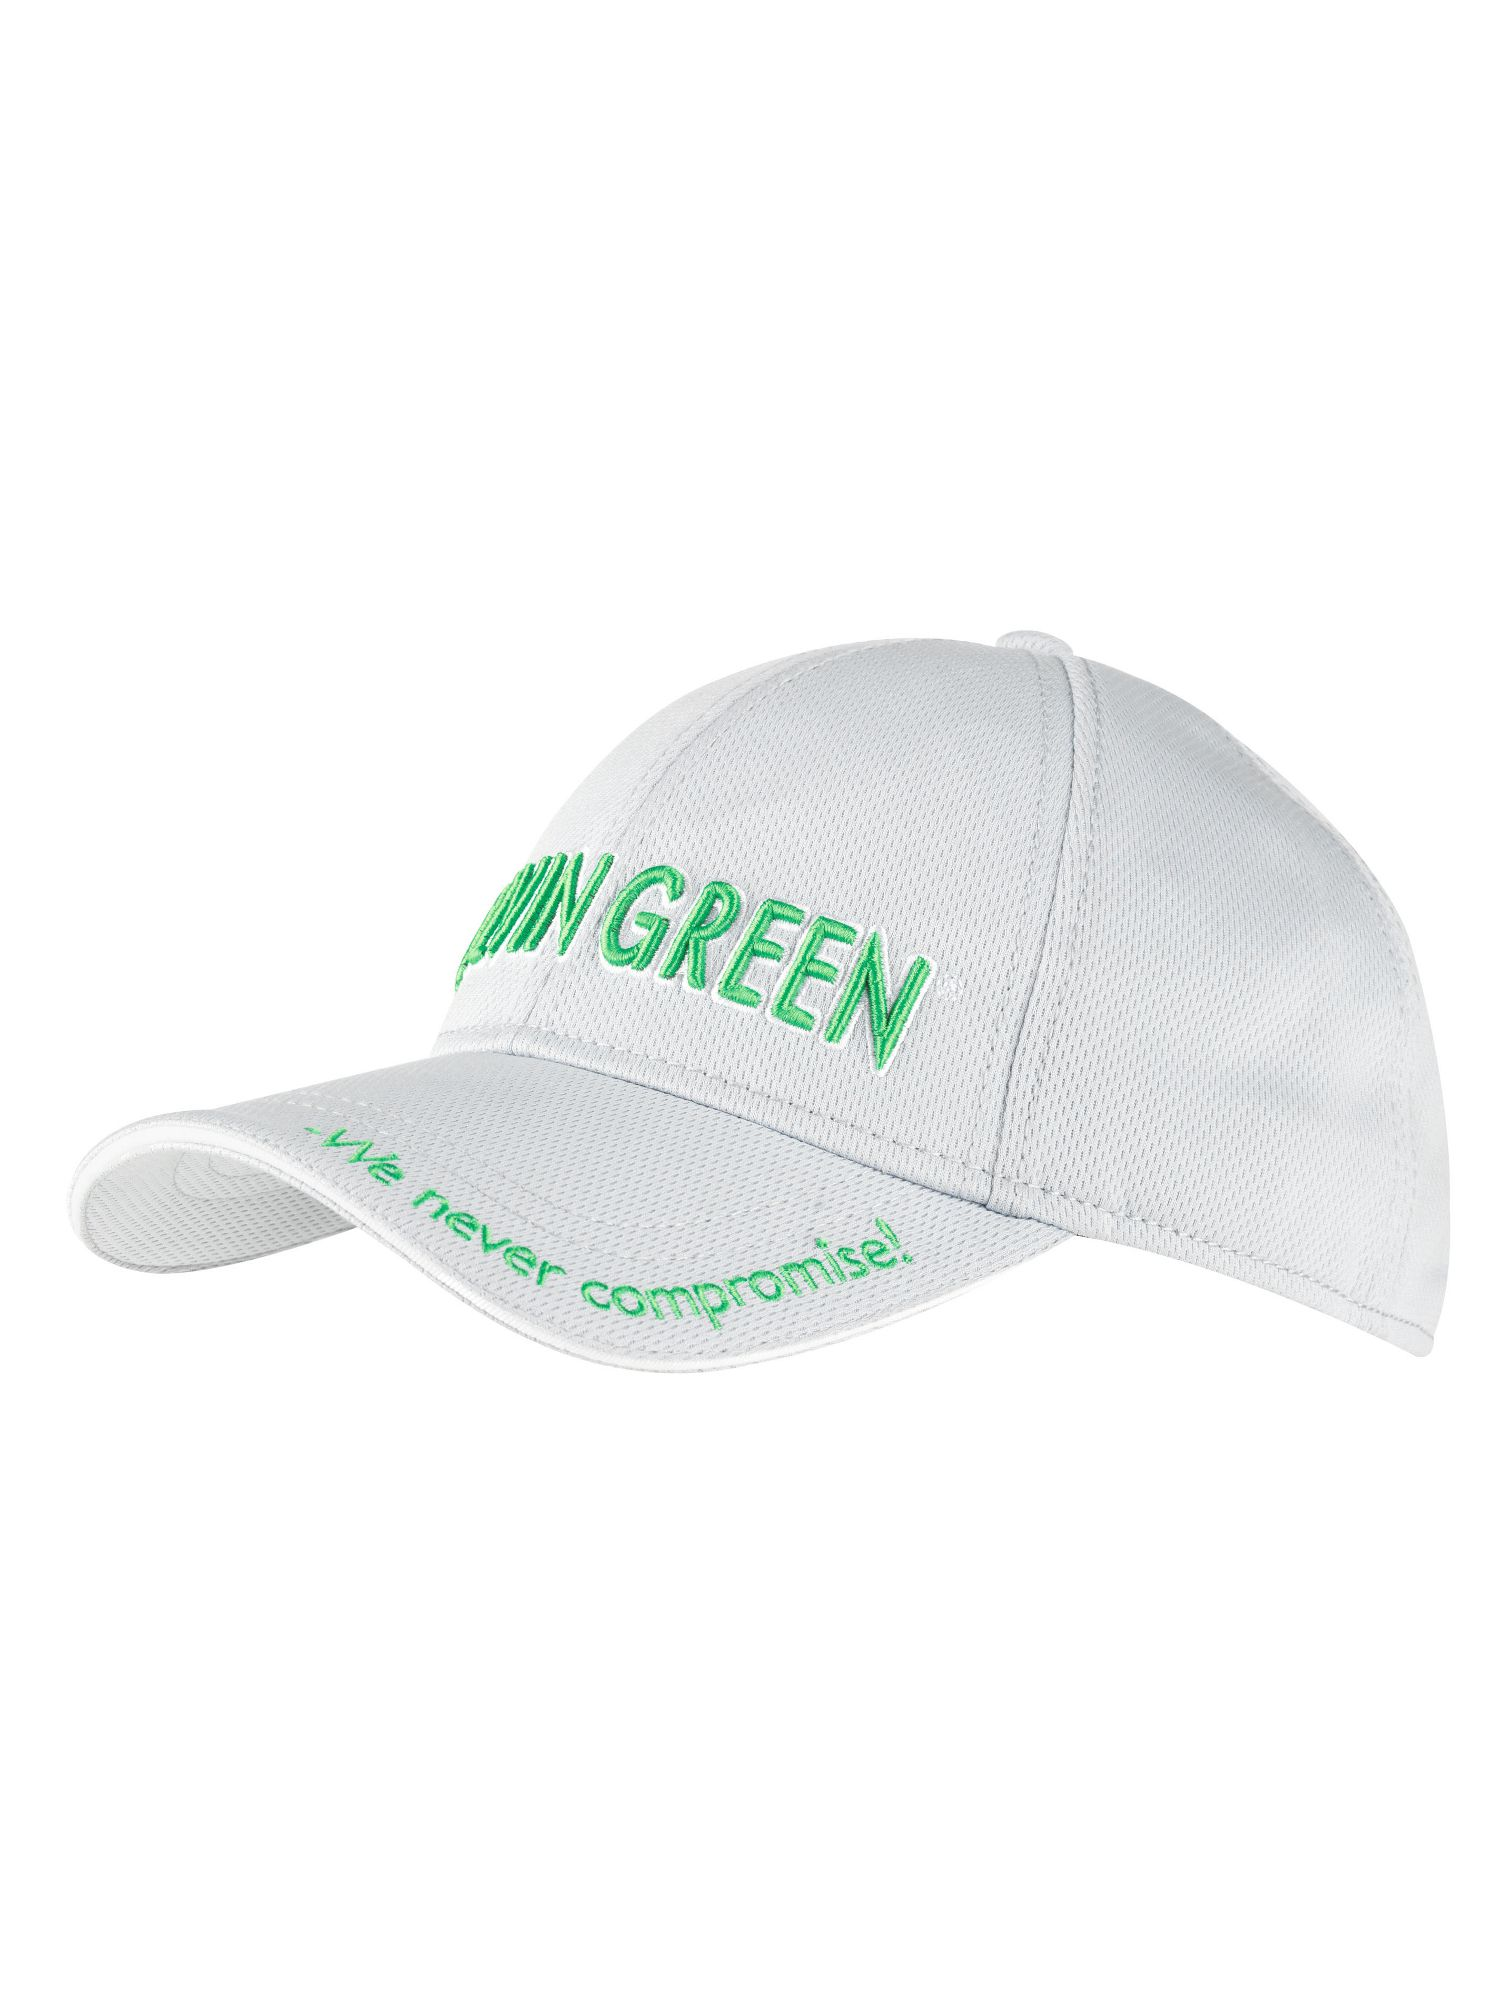 Scott golf cap